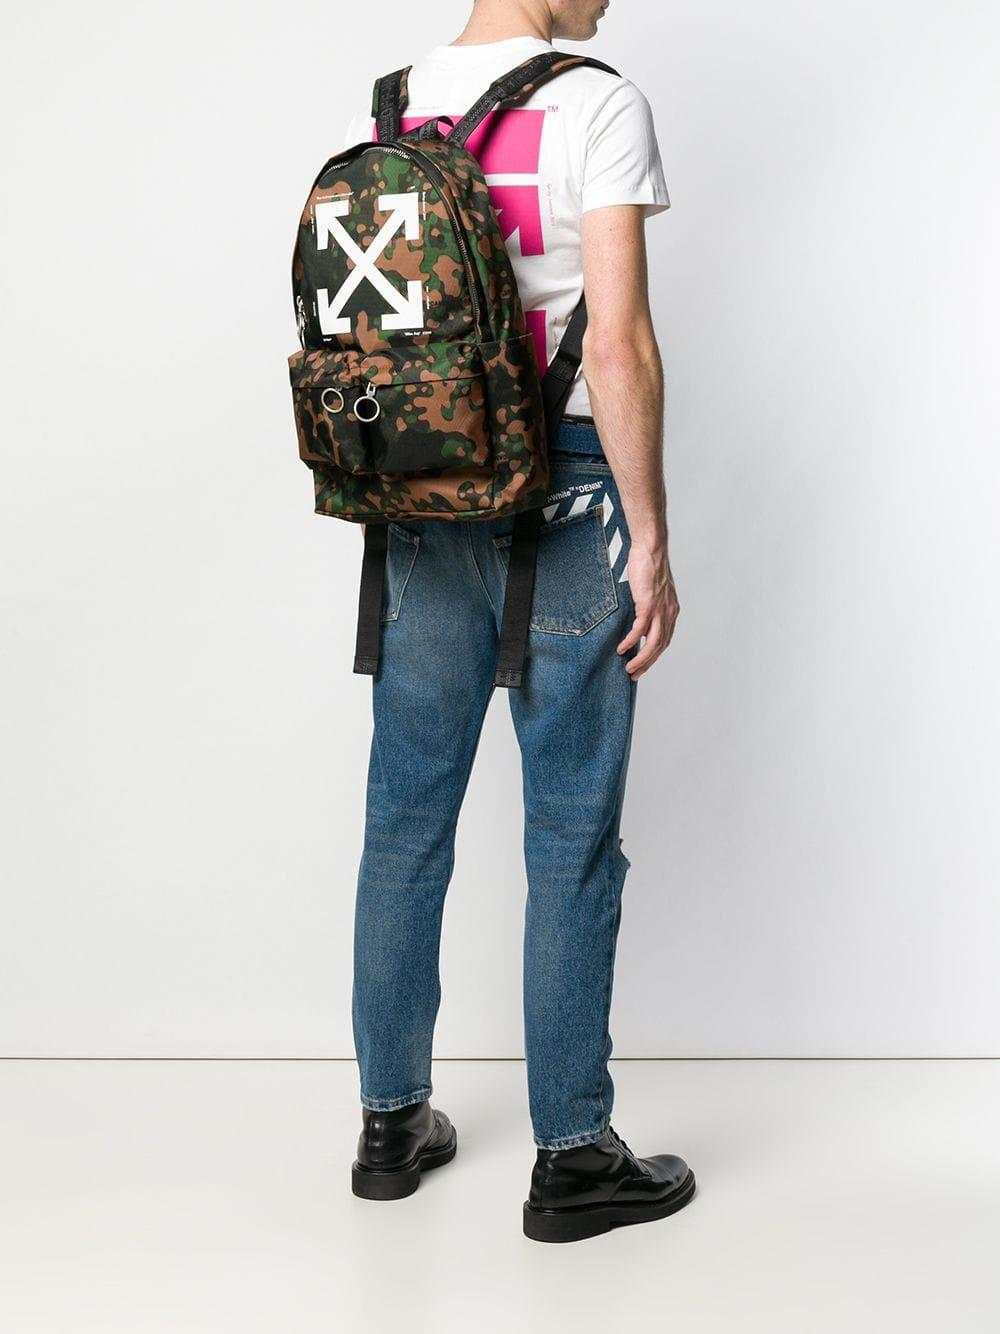 ff8f925a65bf Lyst - Off-White c/o Virgil Abloh Camouflage Arrow Backpack in Green for Men  - Save 27%